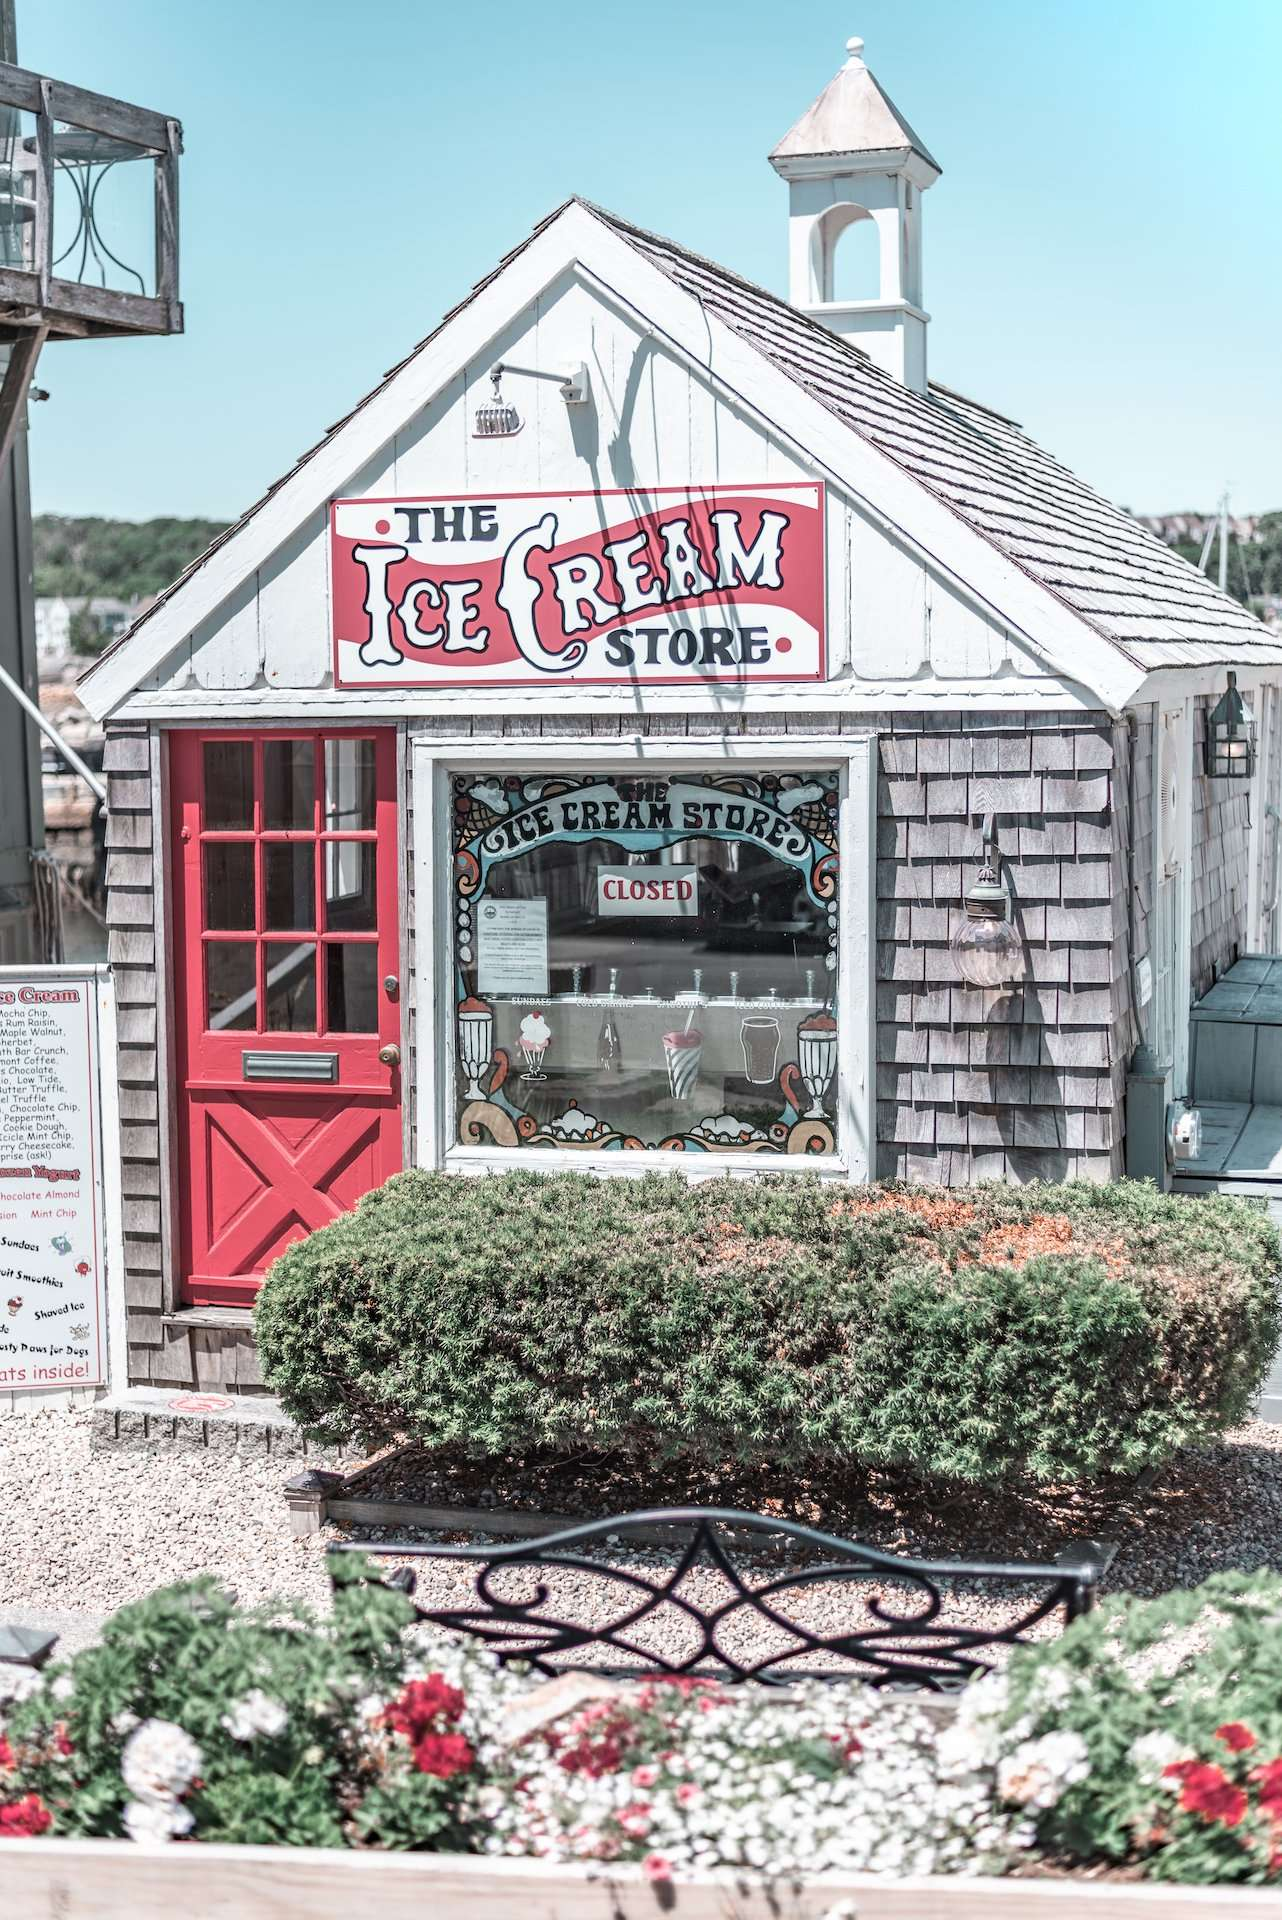 The Ice Cream Store in Rockport, Massachusetts